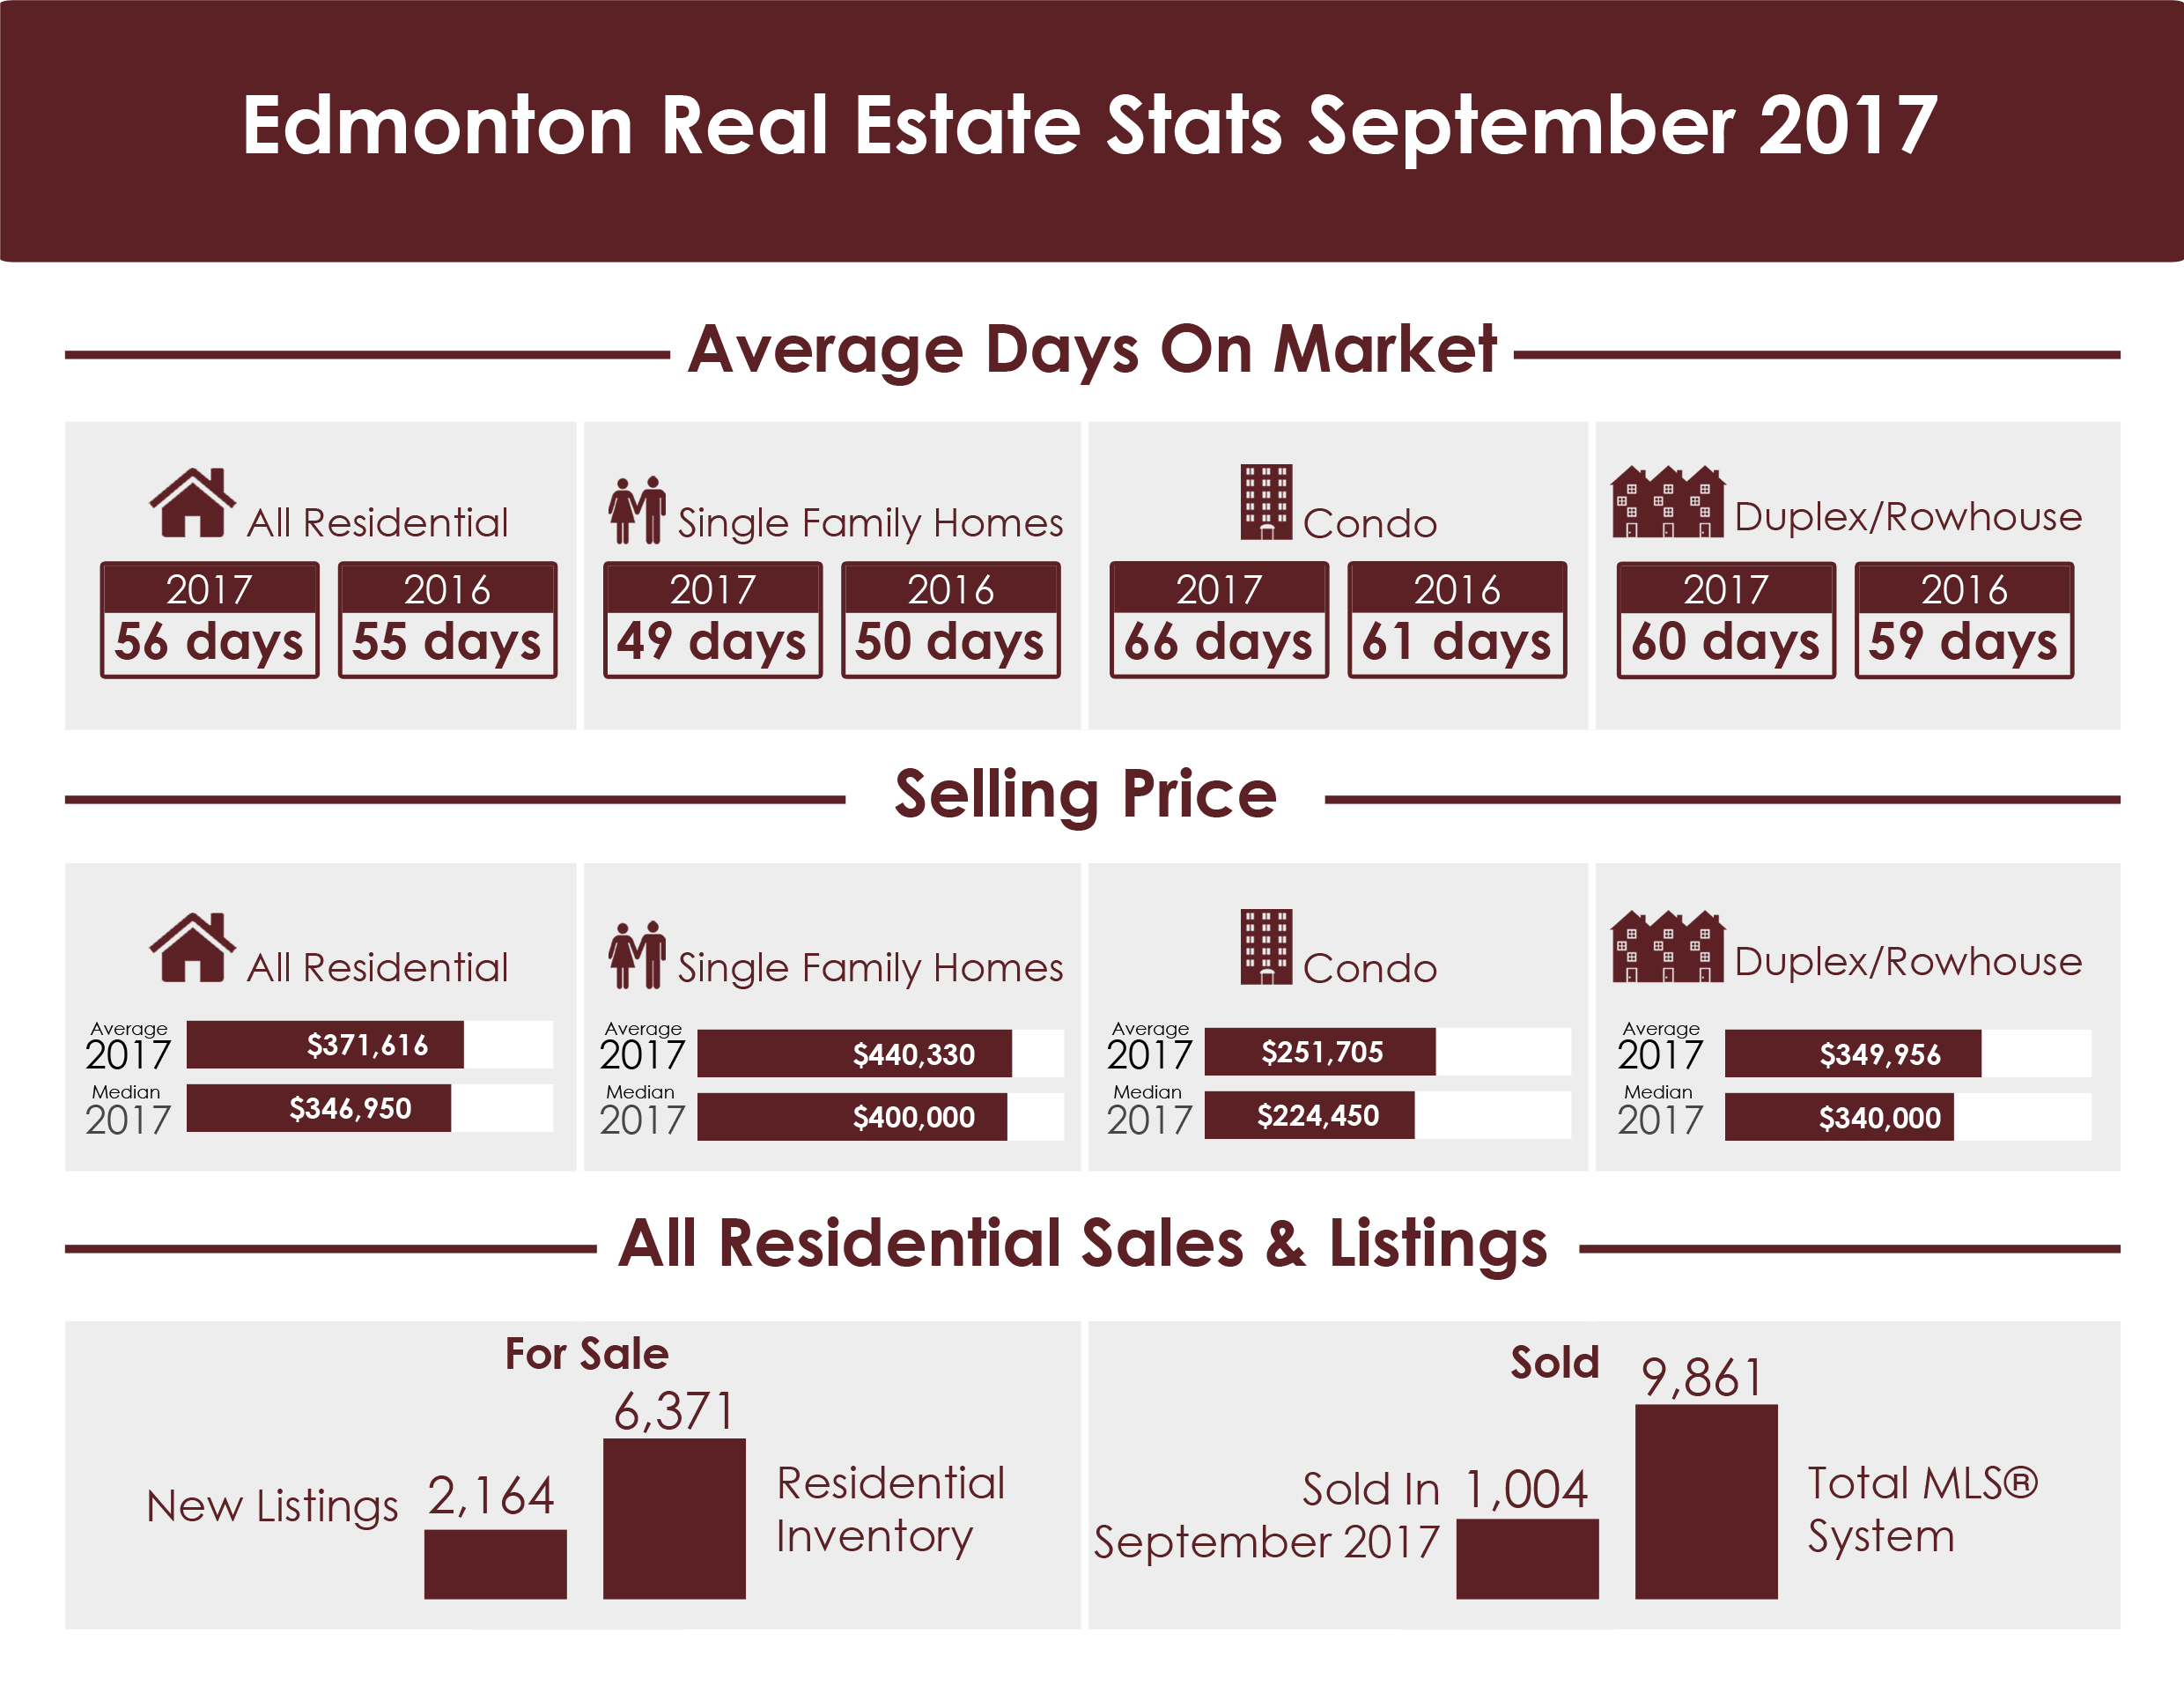 Edmonton Real Estate Stats September 2017